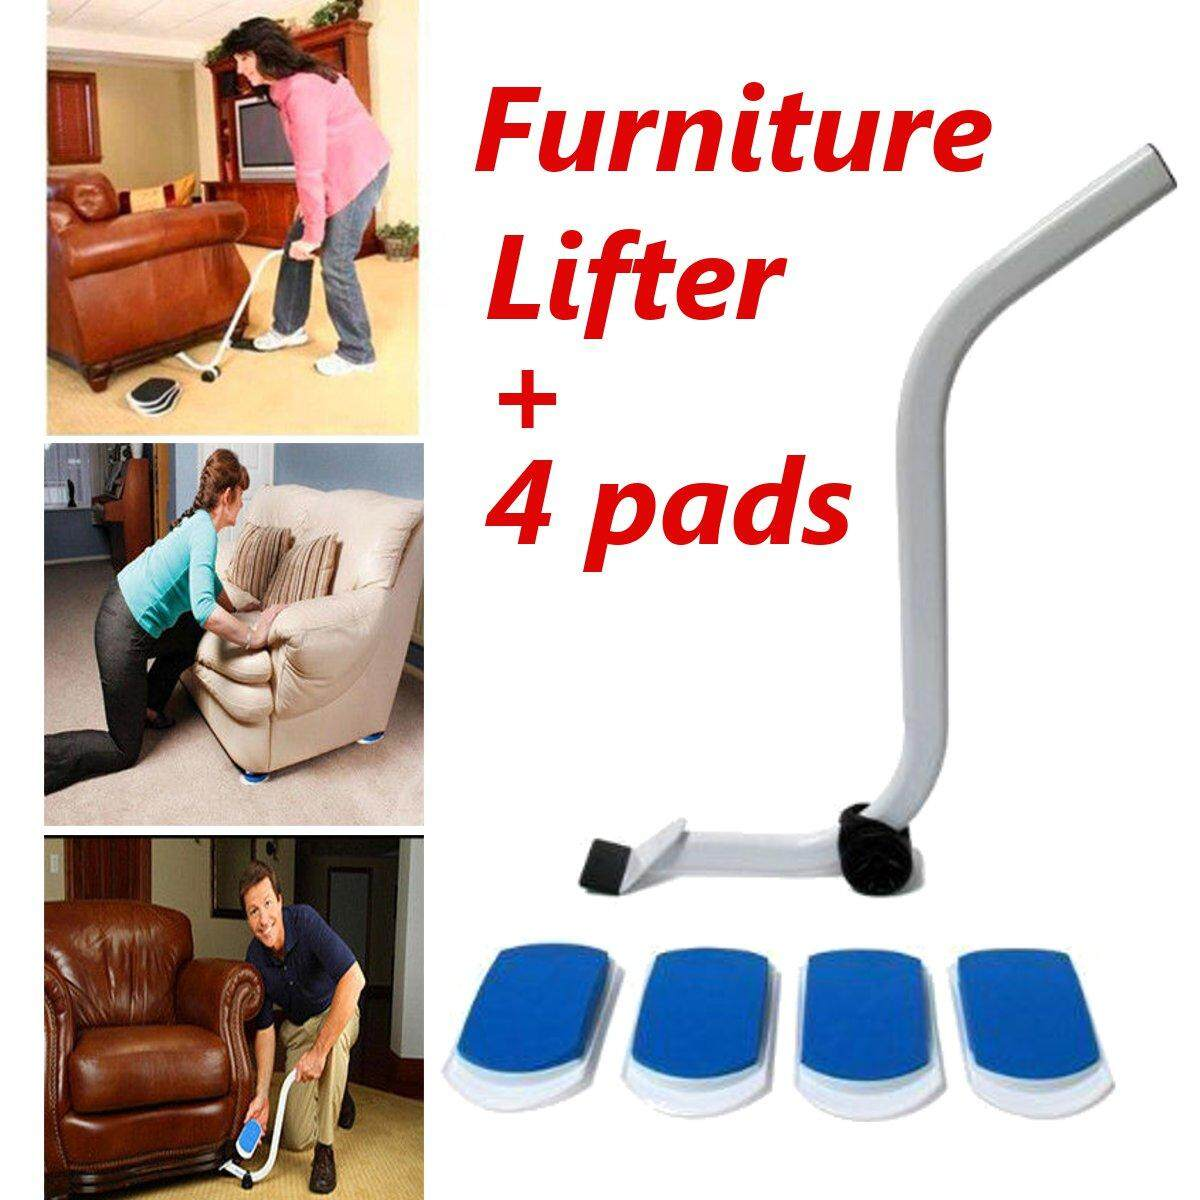 Furniture Lifter Moves with 4 Mobile Pads Sliders Kit Home Moving Lifting System